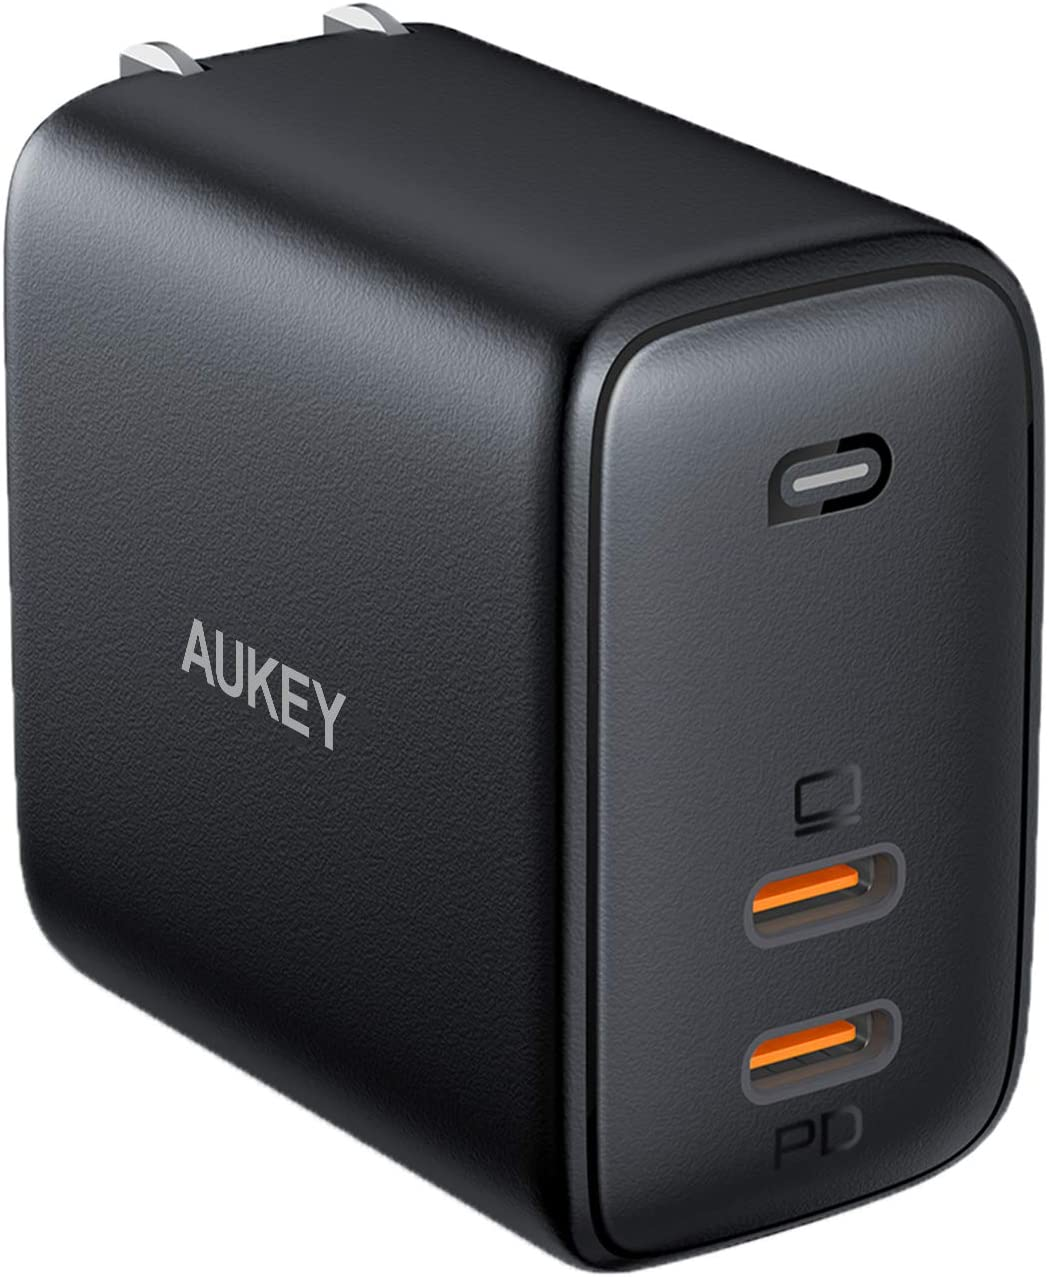 USB C Charger AUKEY Omnia 65W 2-Port Fast Charger Foldable USB C Wall Charger with GaNFast Tech & Dynamic Detect for iPhone 11 Pro Max SE, Macbook Pro, iPad, AirPods Pro, Pixel 4XL, Galaxy S10, Switch